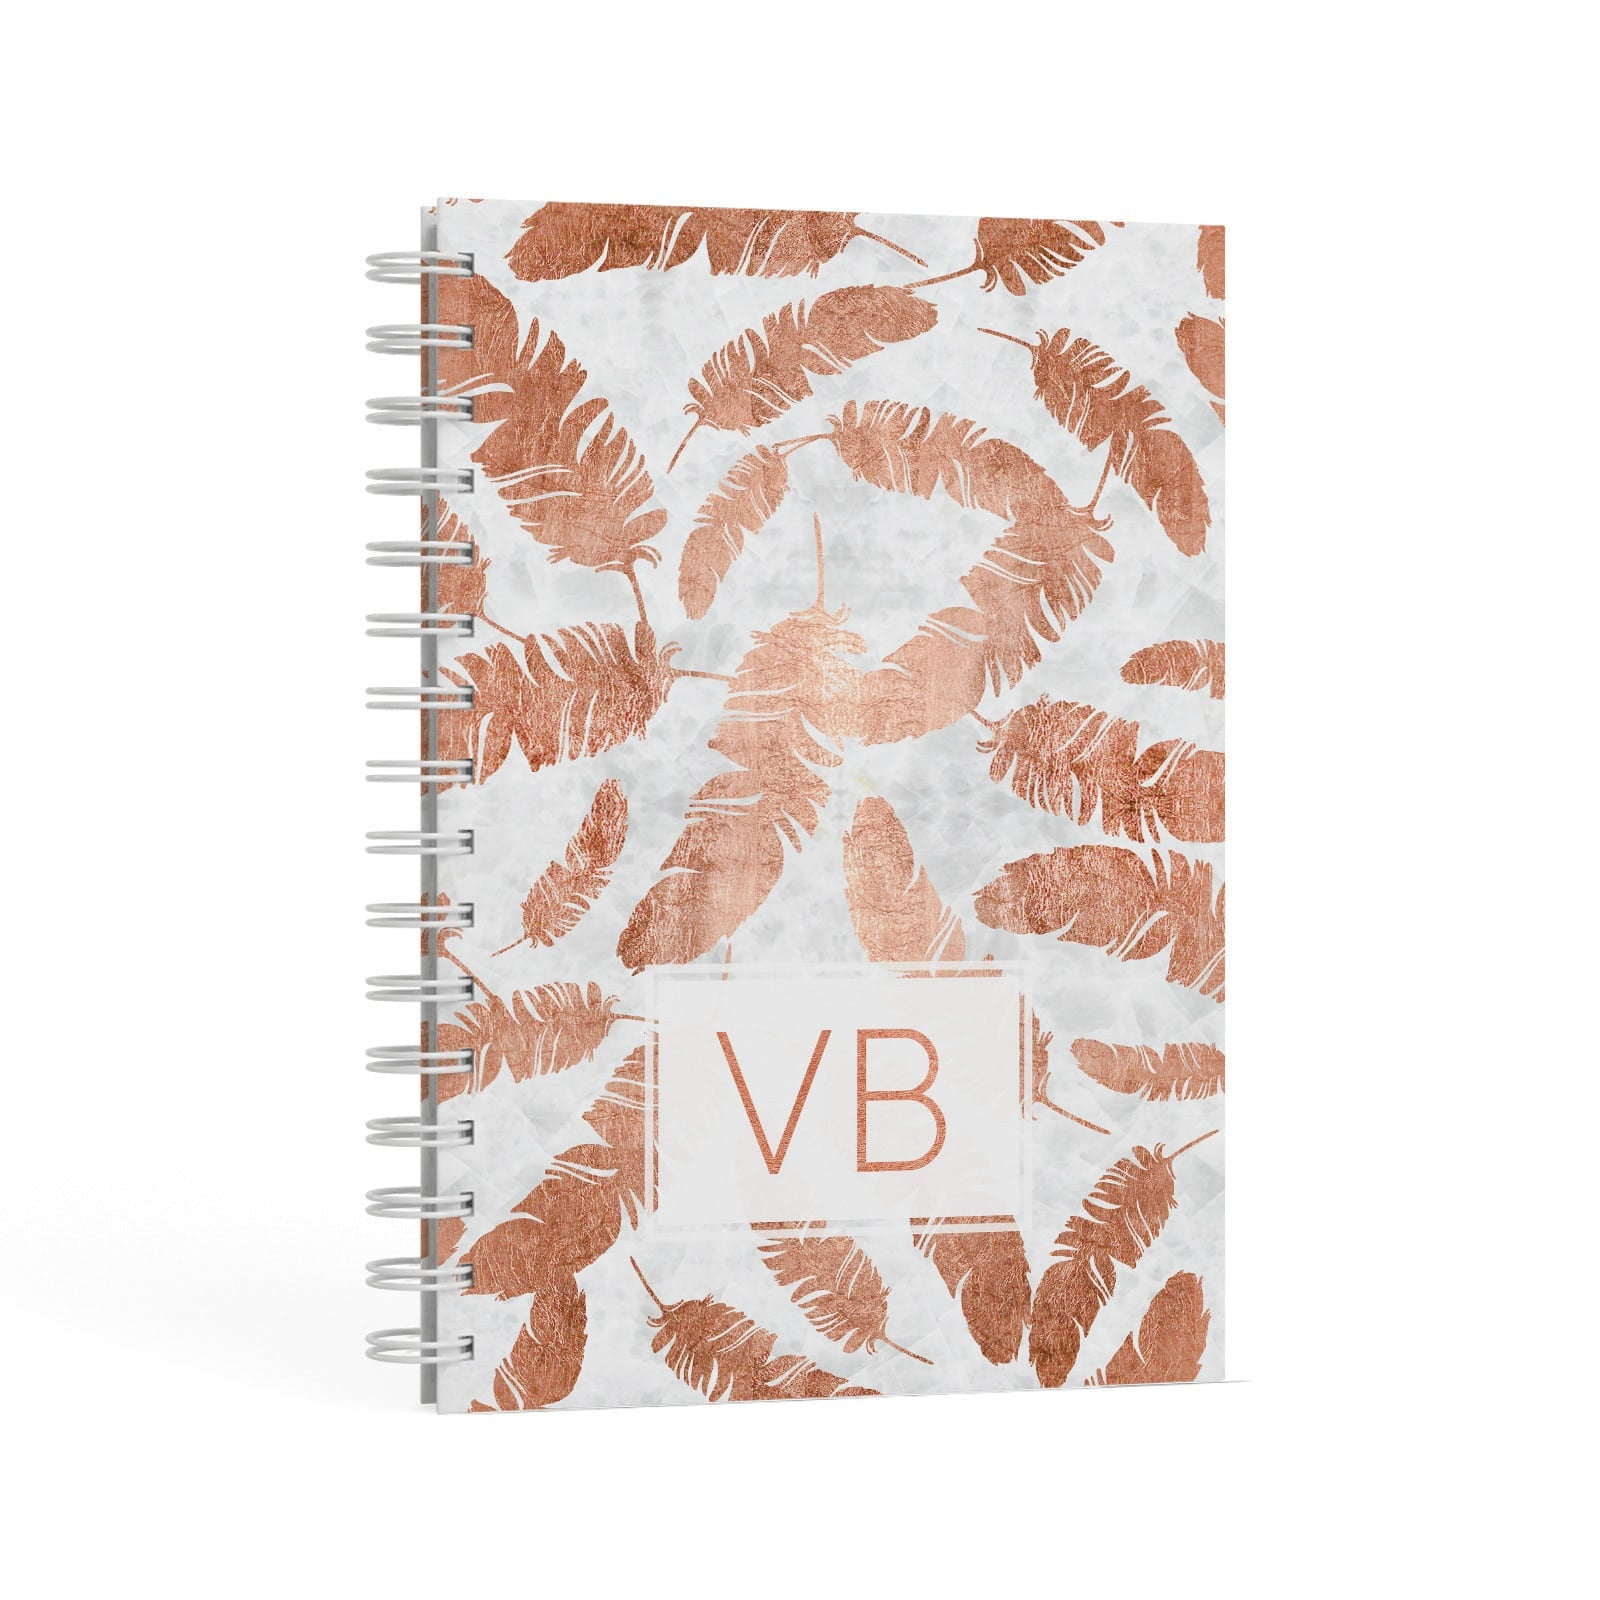 Personalised Leaf Marble Initials A5 Hardcover Notebook Second Side View